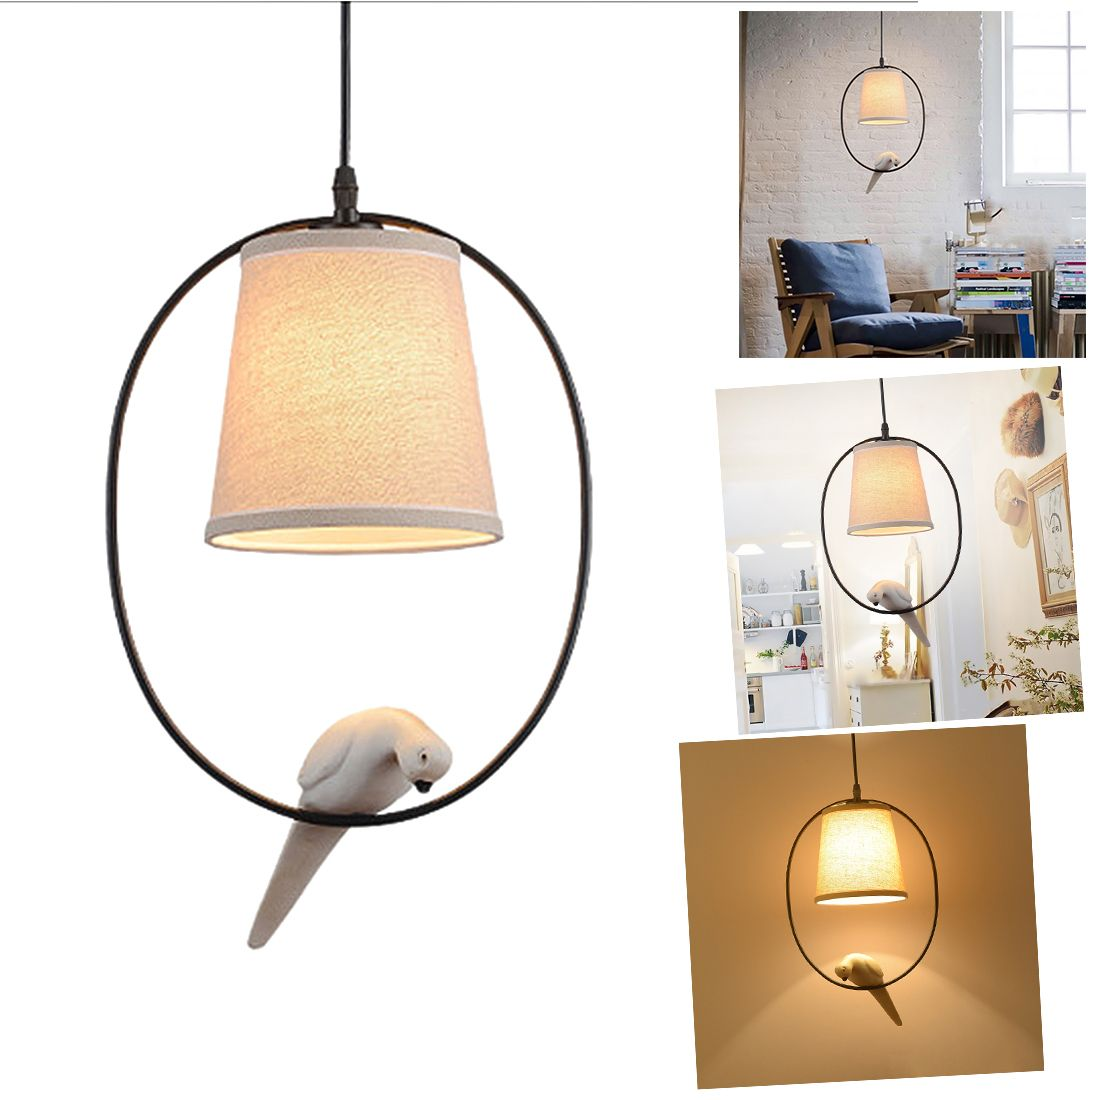 Retro Single Head Resin Bird Chandelier American Country Personality Aisle Bedroom Living Room Lighting Study Restaurant Chande